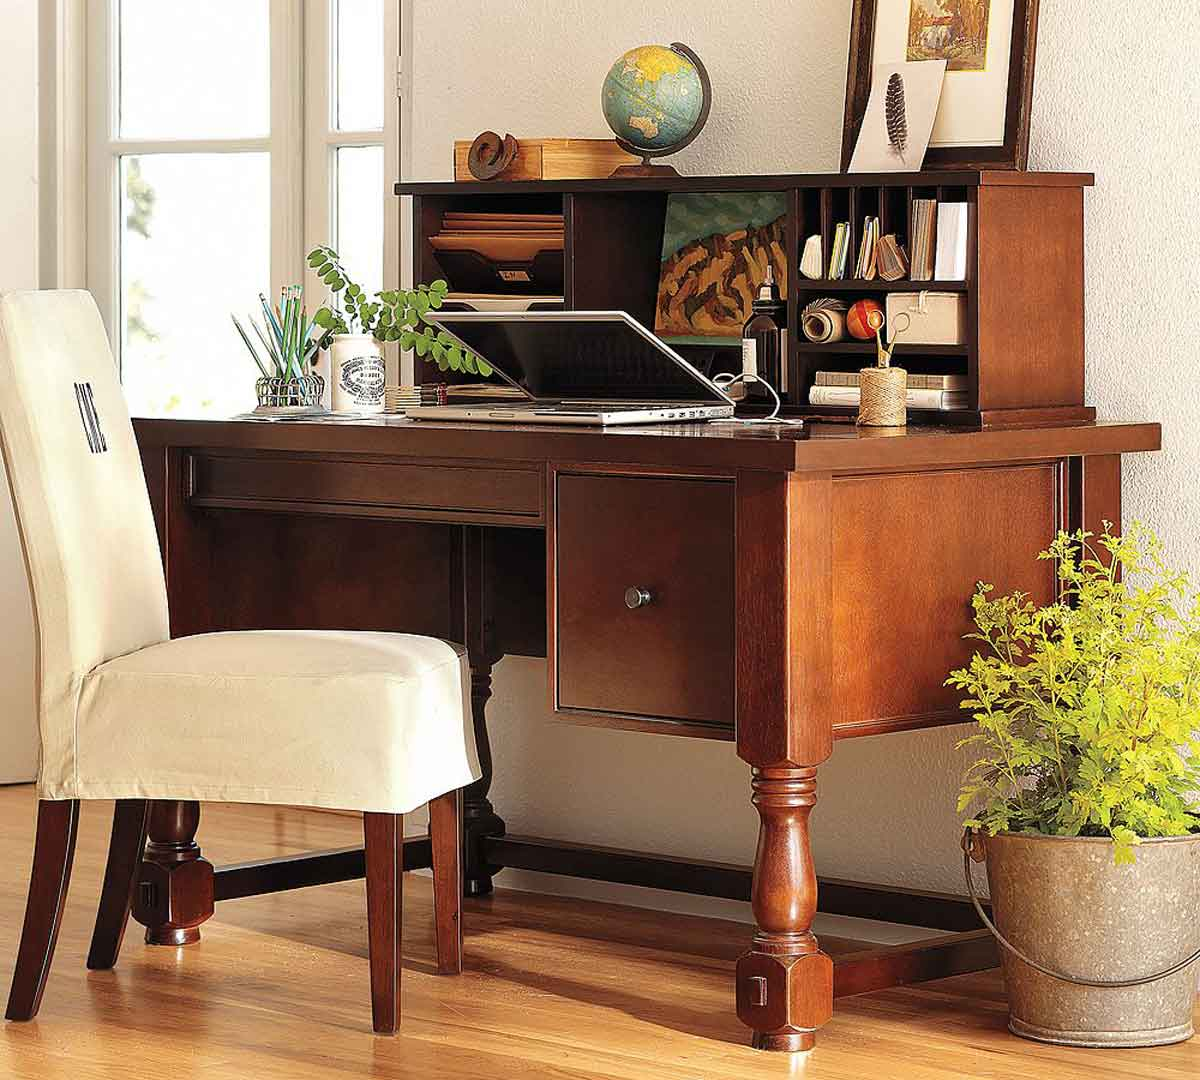 Home Desk Design Ideas: Home Office Design Ideas